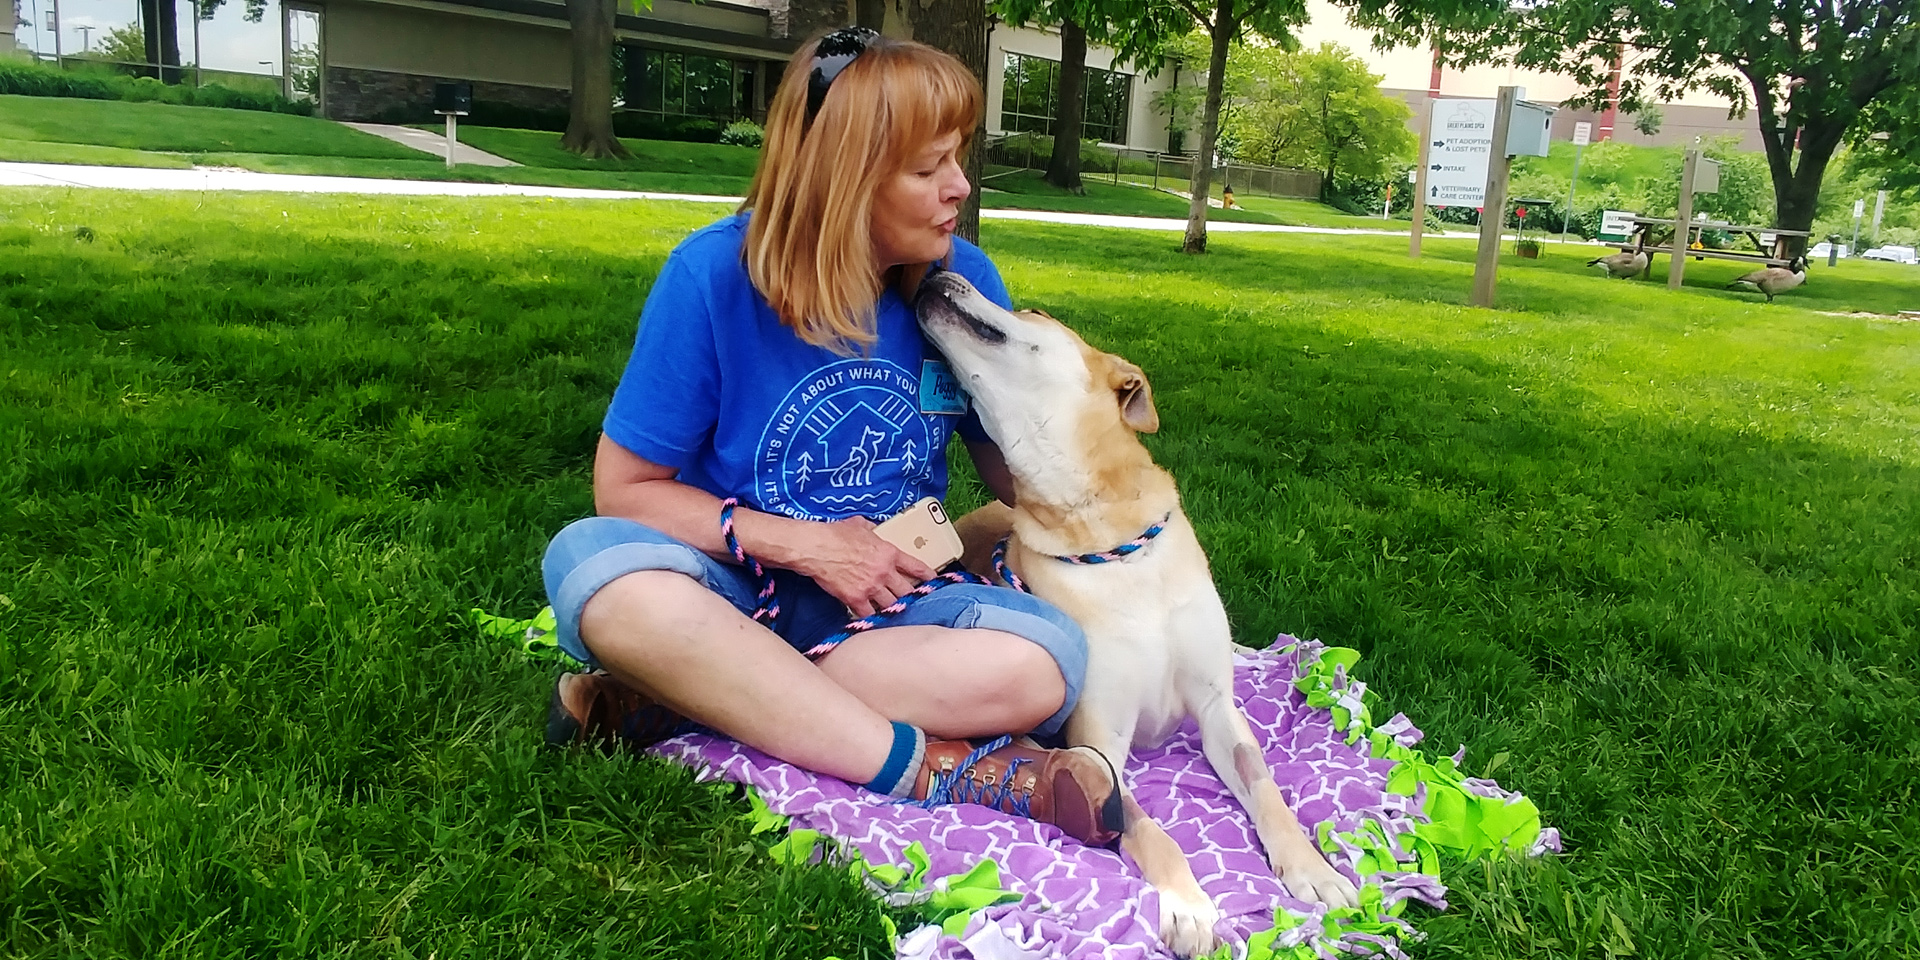 Woman sits on blanket with dog